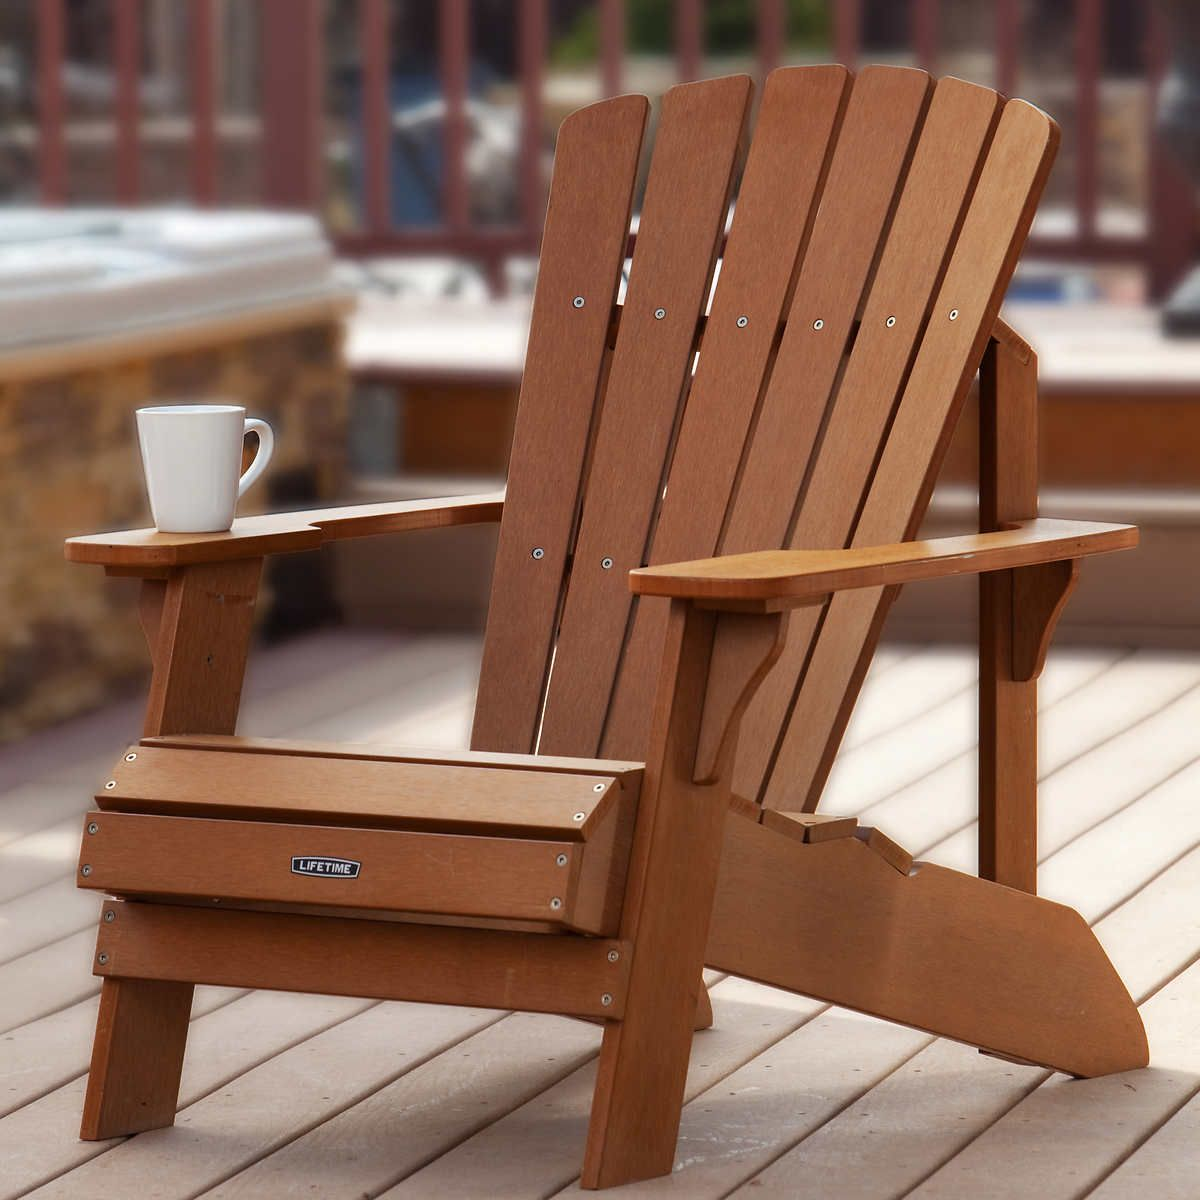 Pin By Erin Kovacs On Erin S House Board Adirondack Chair Wood Adirondack Chairs Adirondack Chairs Patio